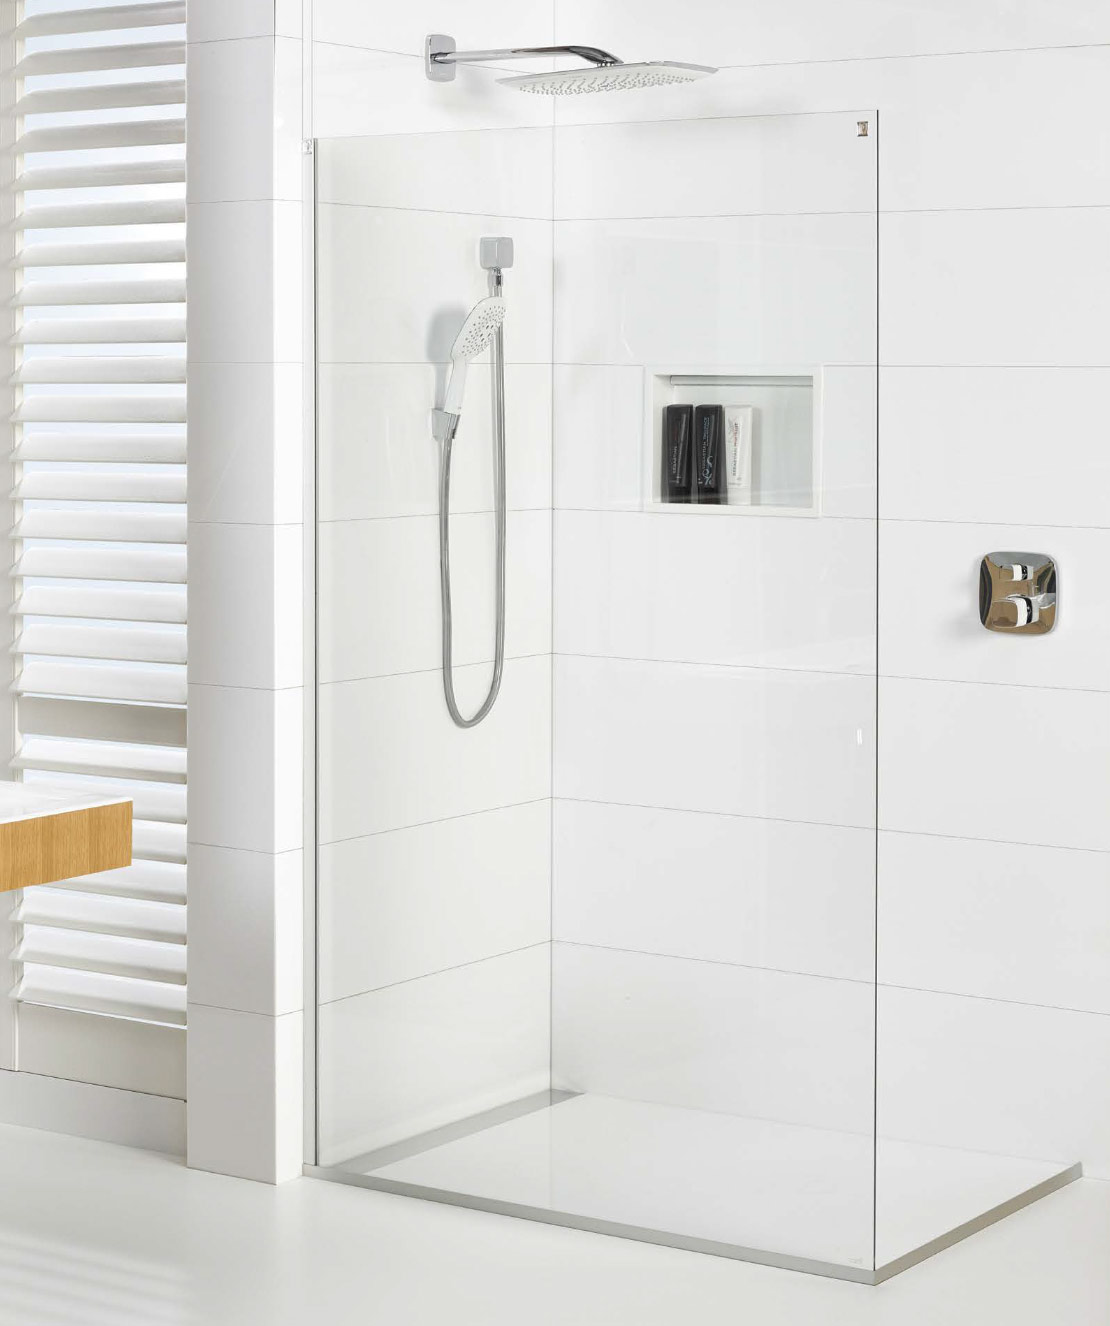 White Bathrooms Nz ellure™ tile look shower walls | atlantis bathroom style